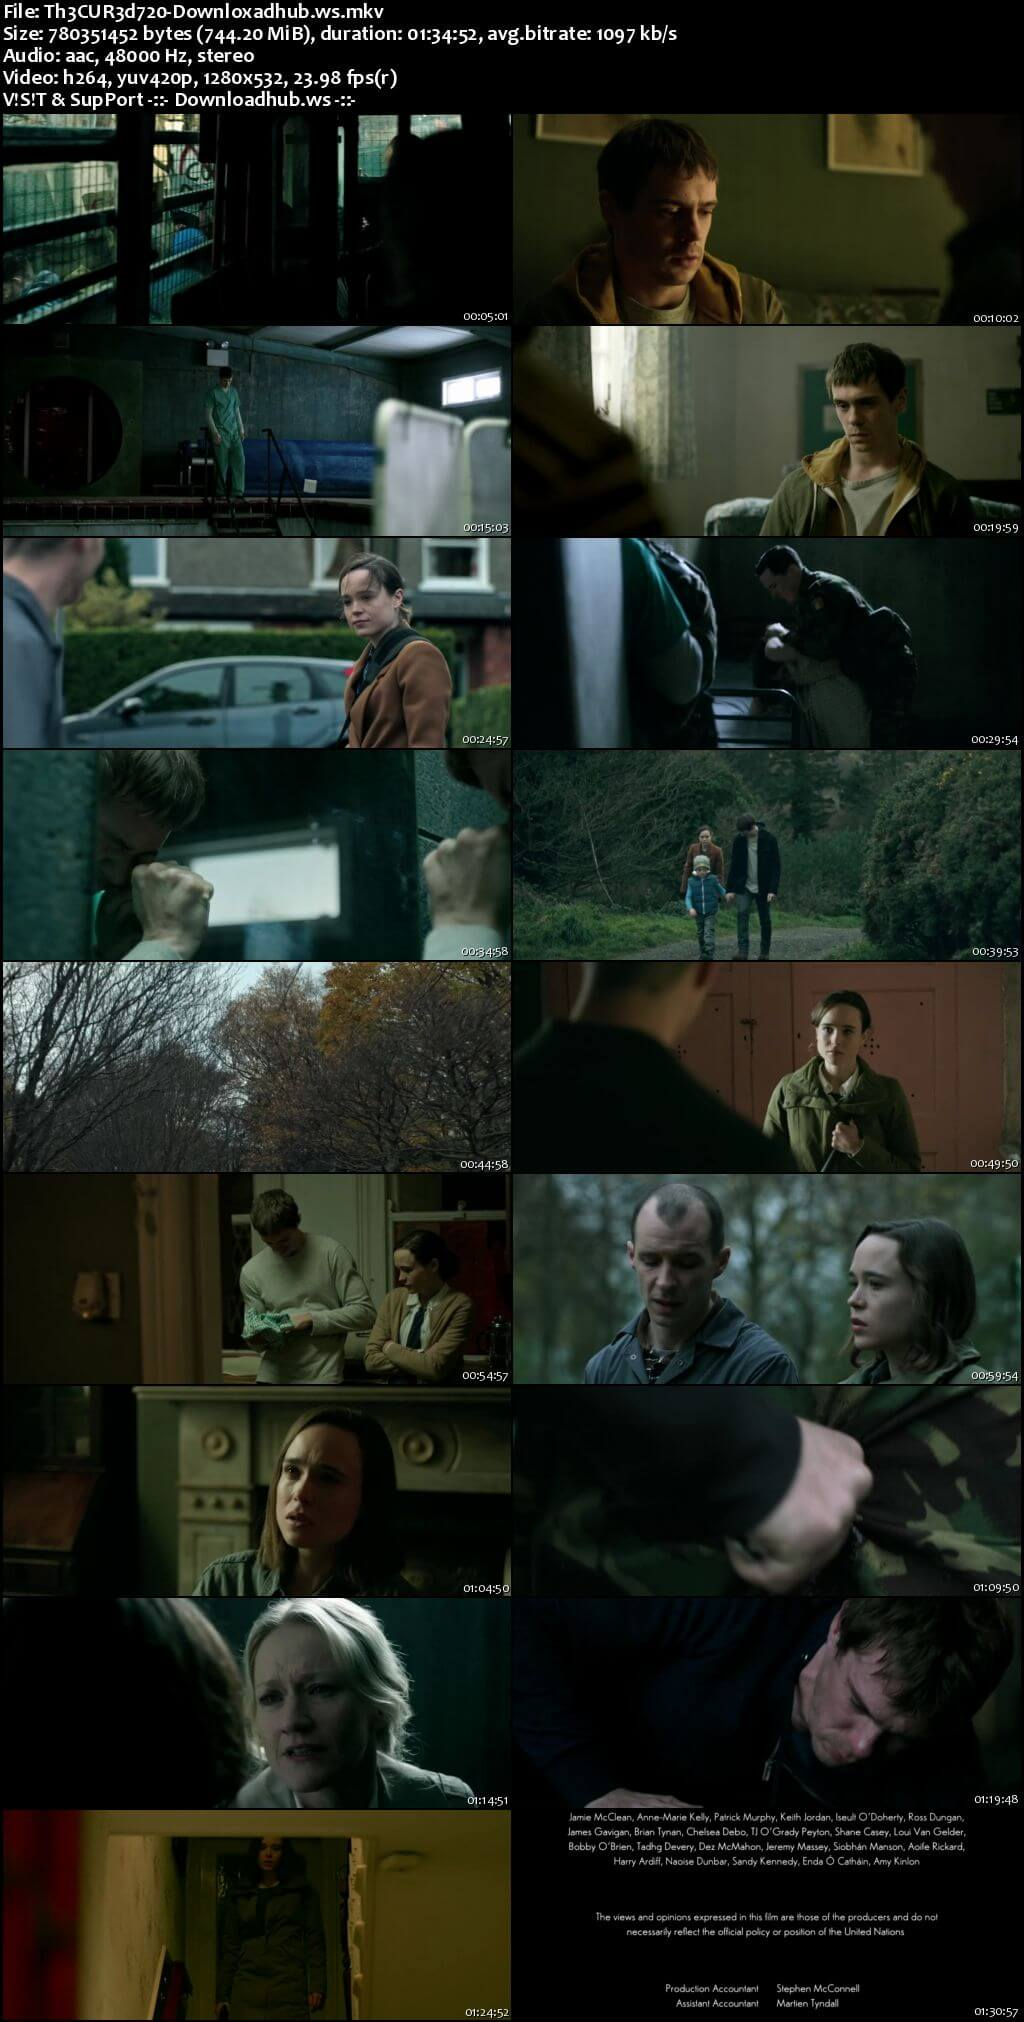 The Cured 2017 English 720p Web-DL 750MB